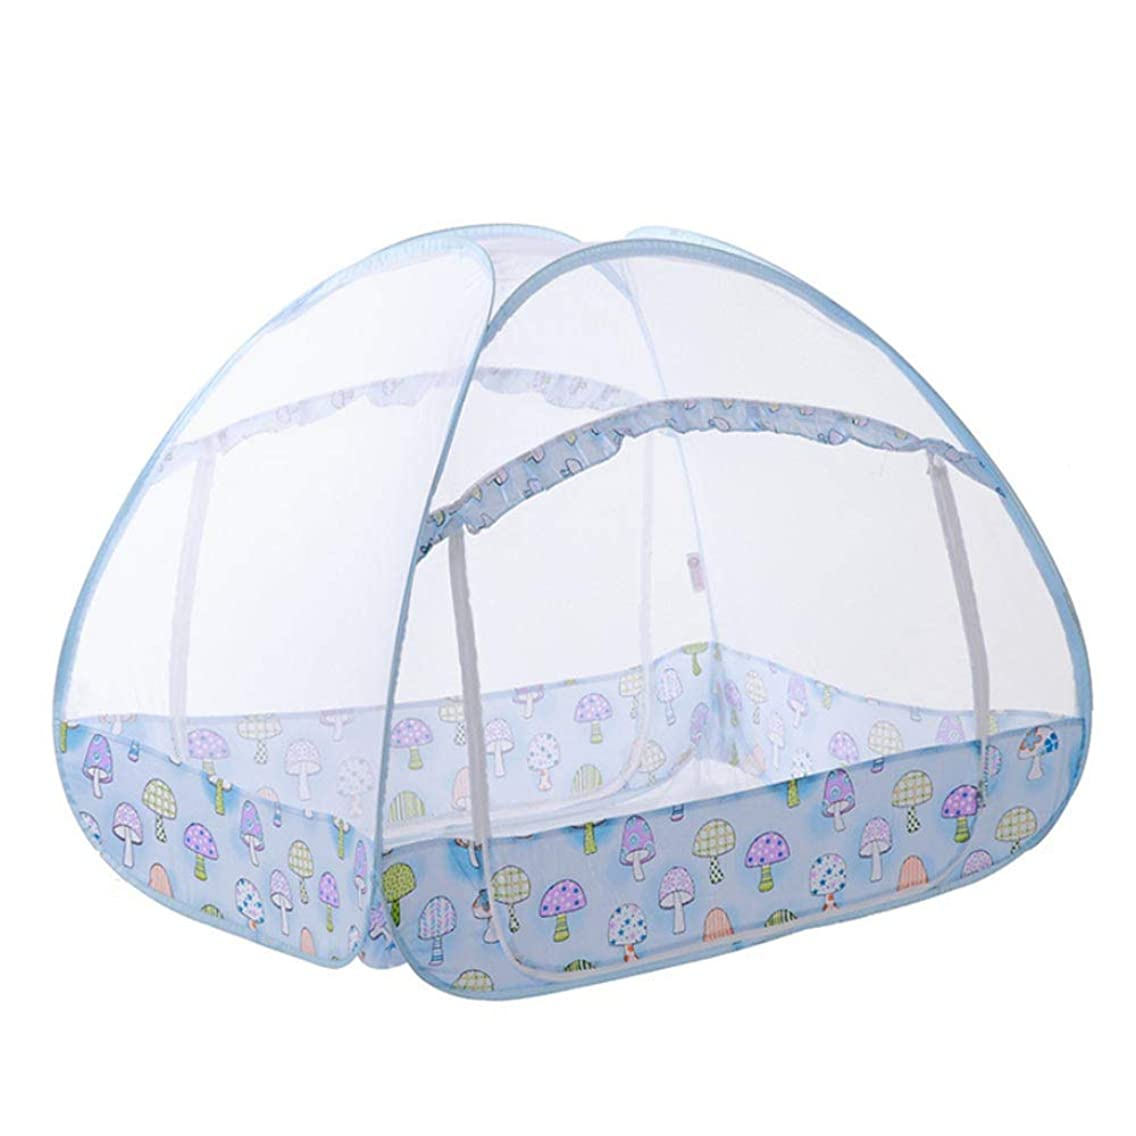 SANGDA Baby Canopy Crib Tent,Nursery Mesh Cover Net Safety Mosquito Net Canopy Cover Infant Crib Tent Net for for Baby Toddlers Kids Mosquito Bites Beds Home Bedroom Decor(41.3a€x23.6a€x31.5a€)